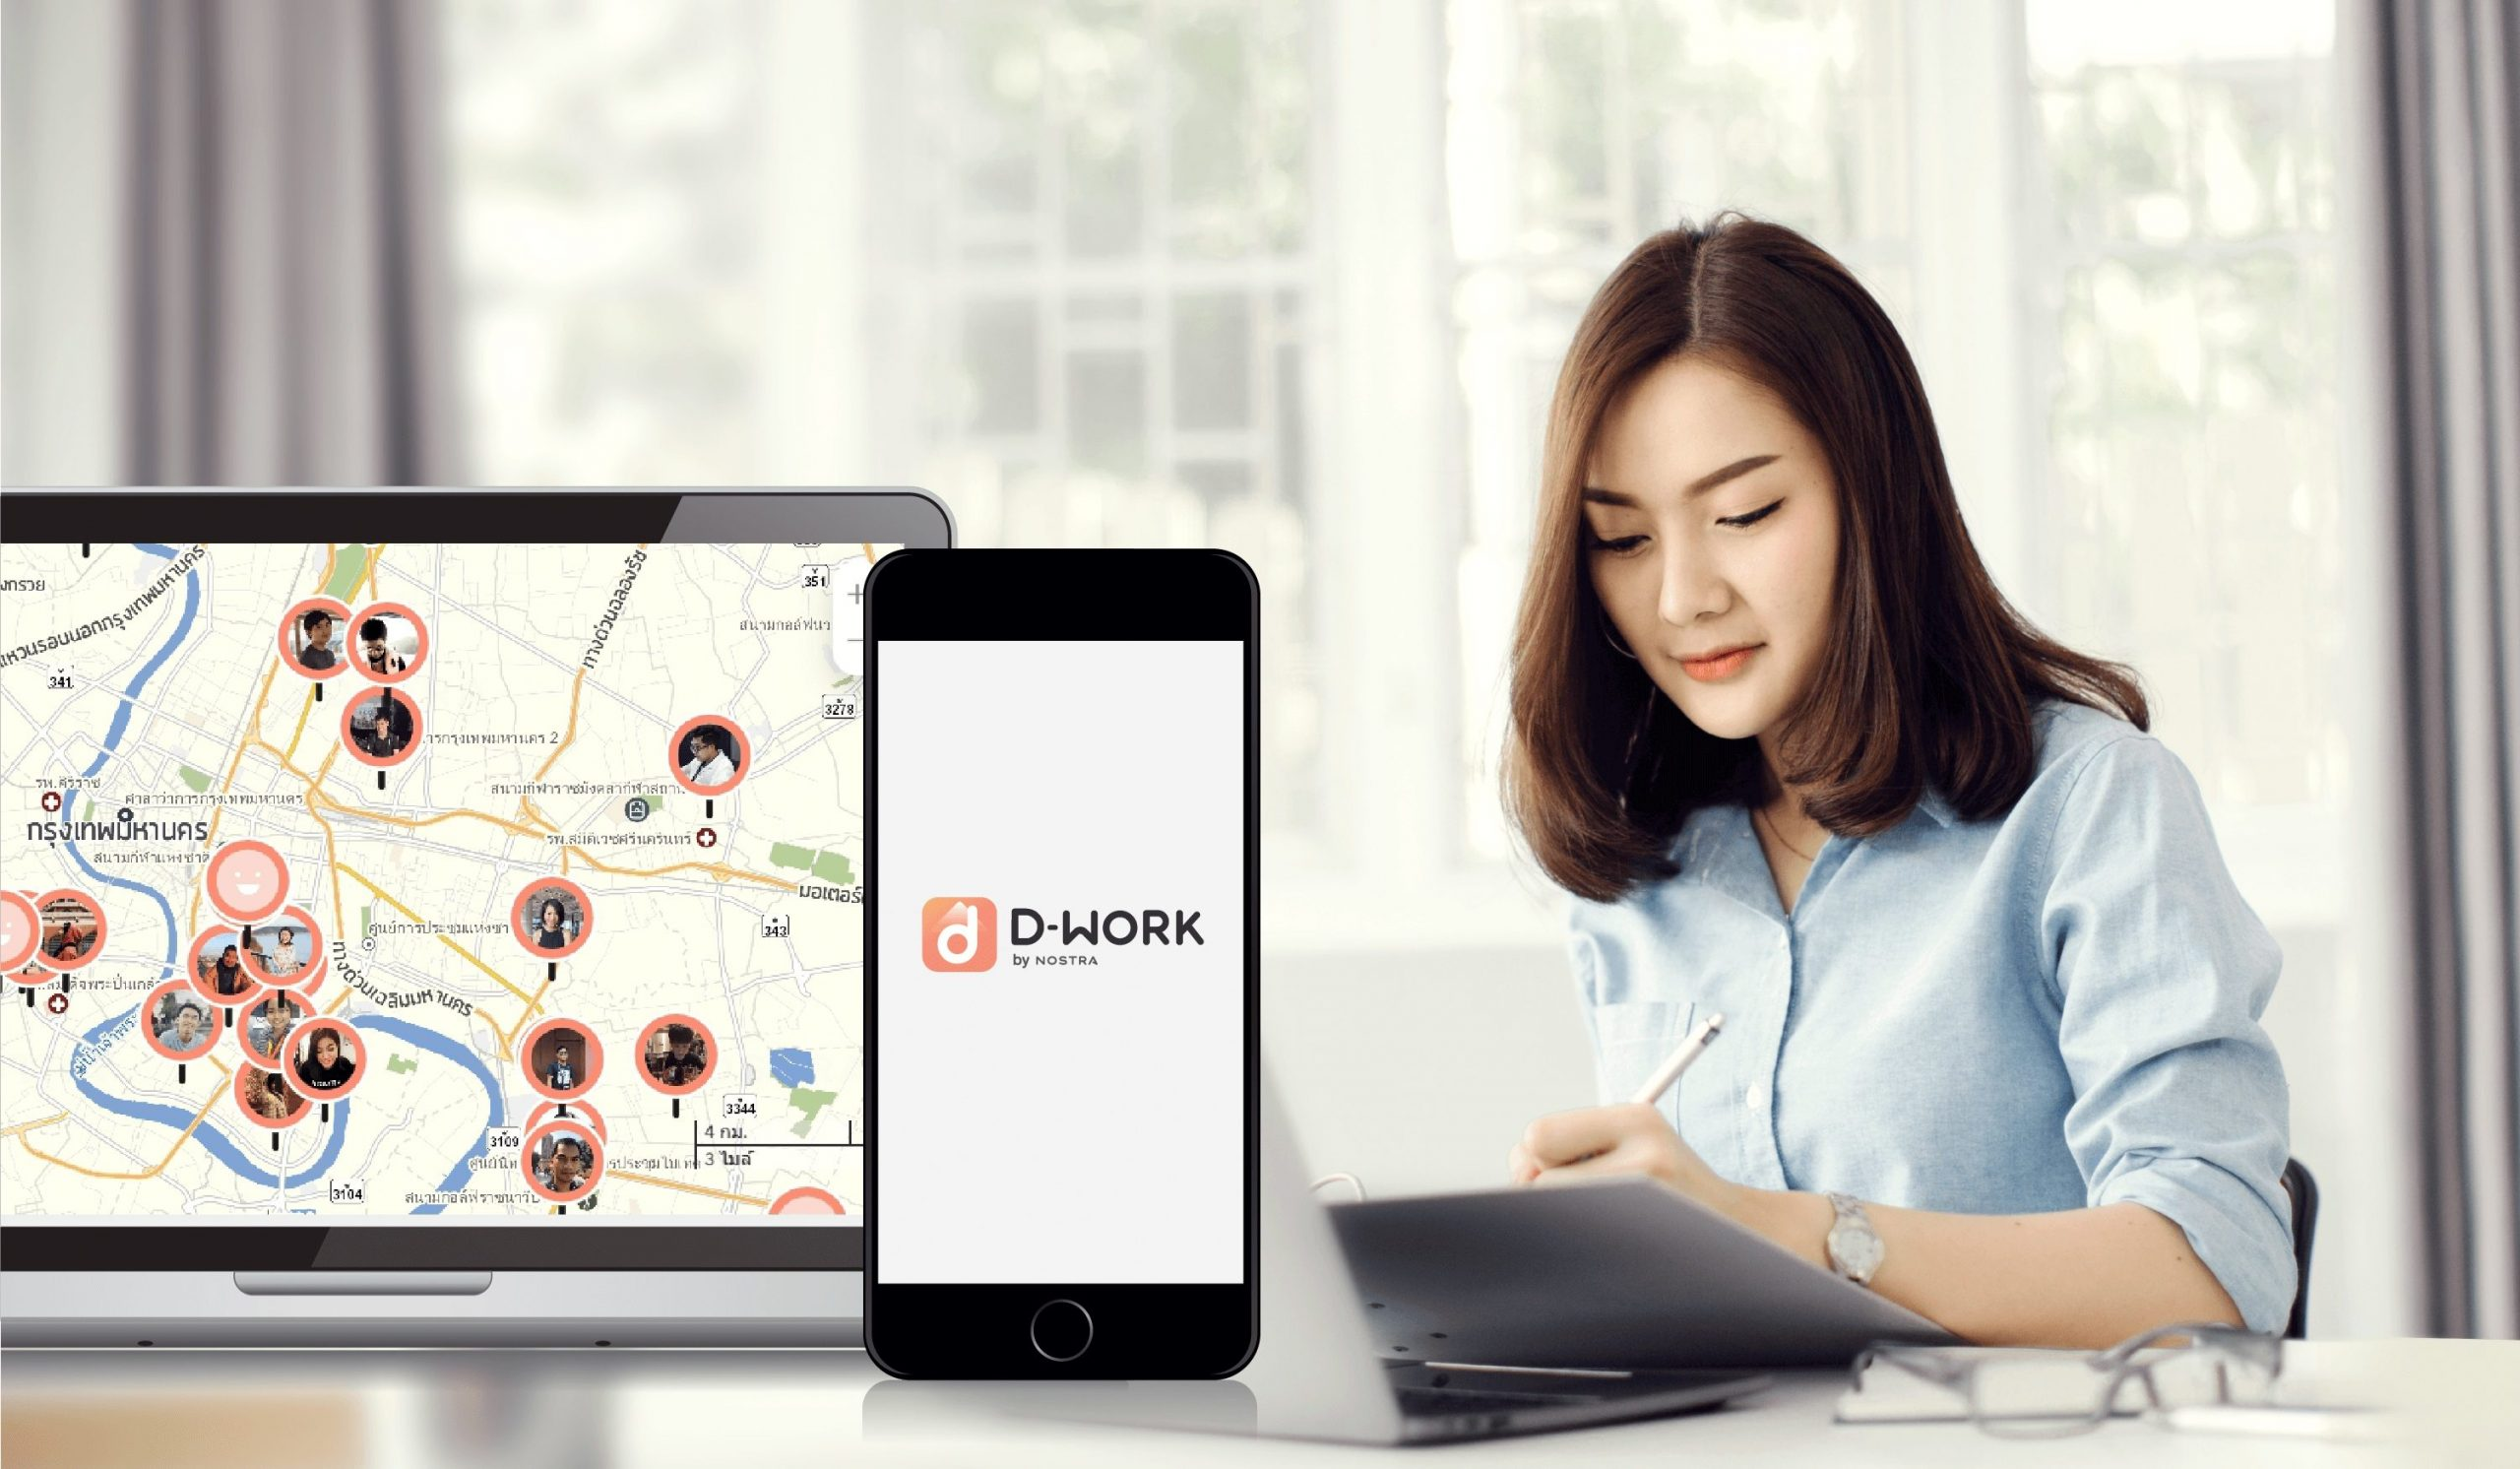 work from home tracking app d-work